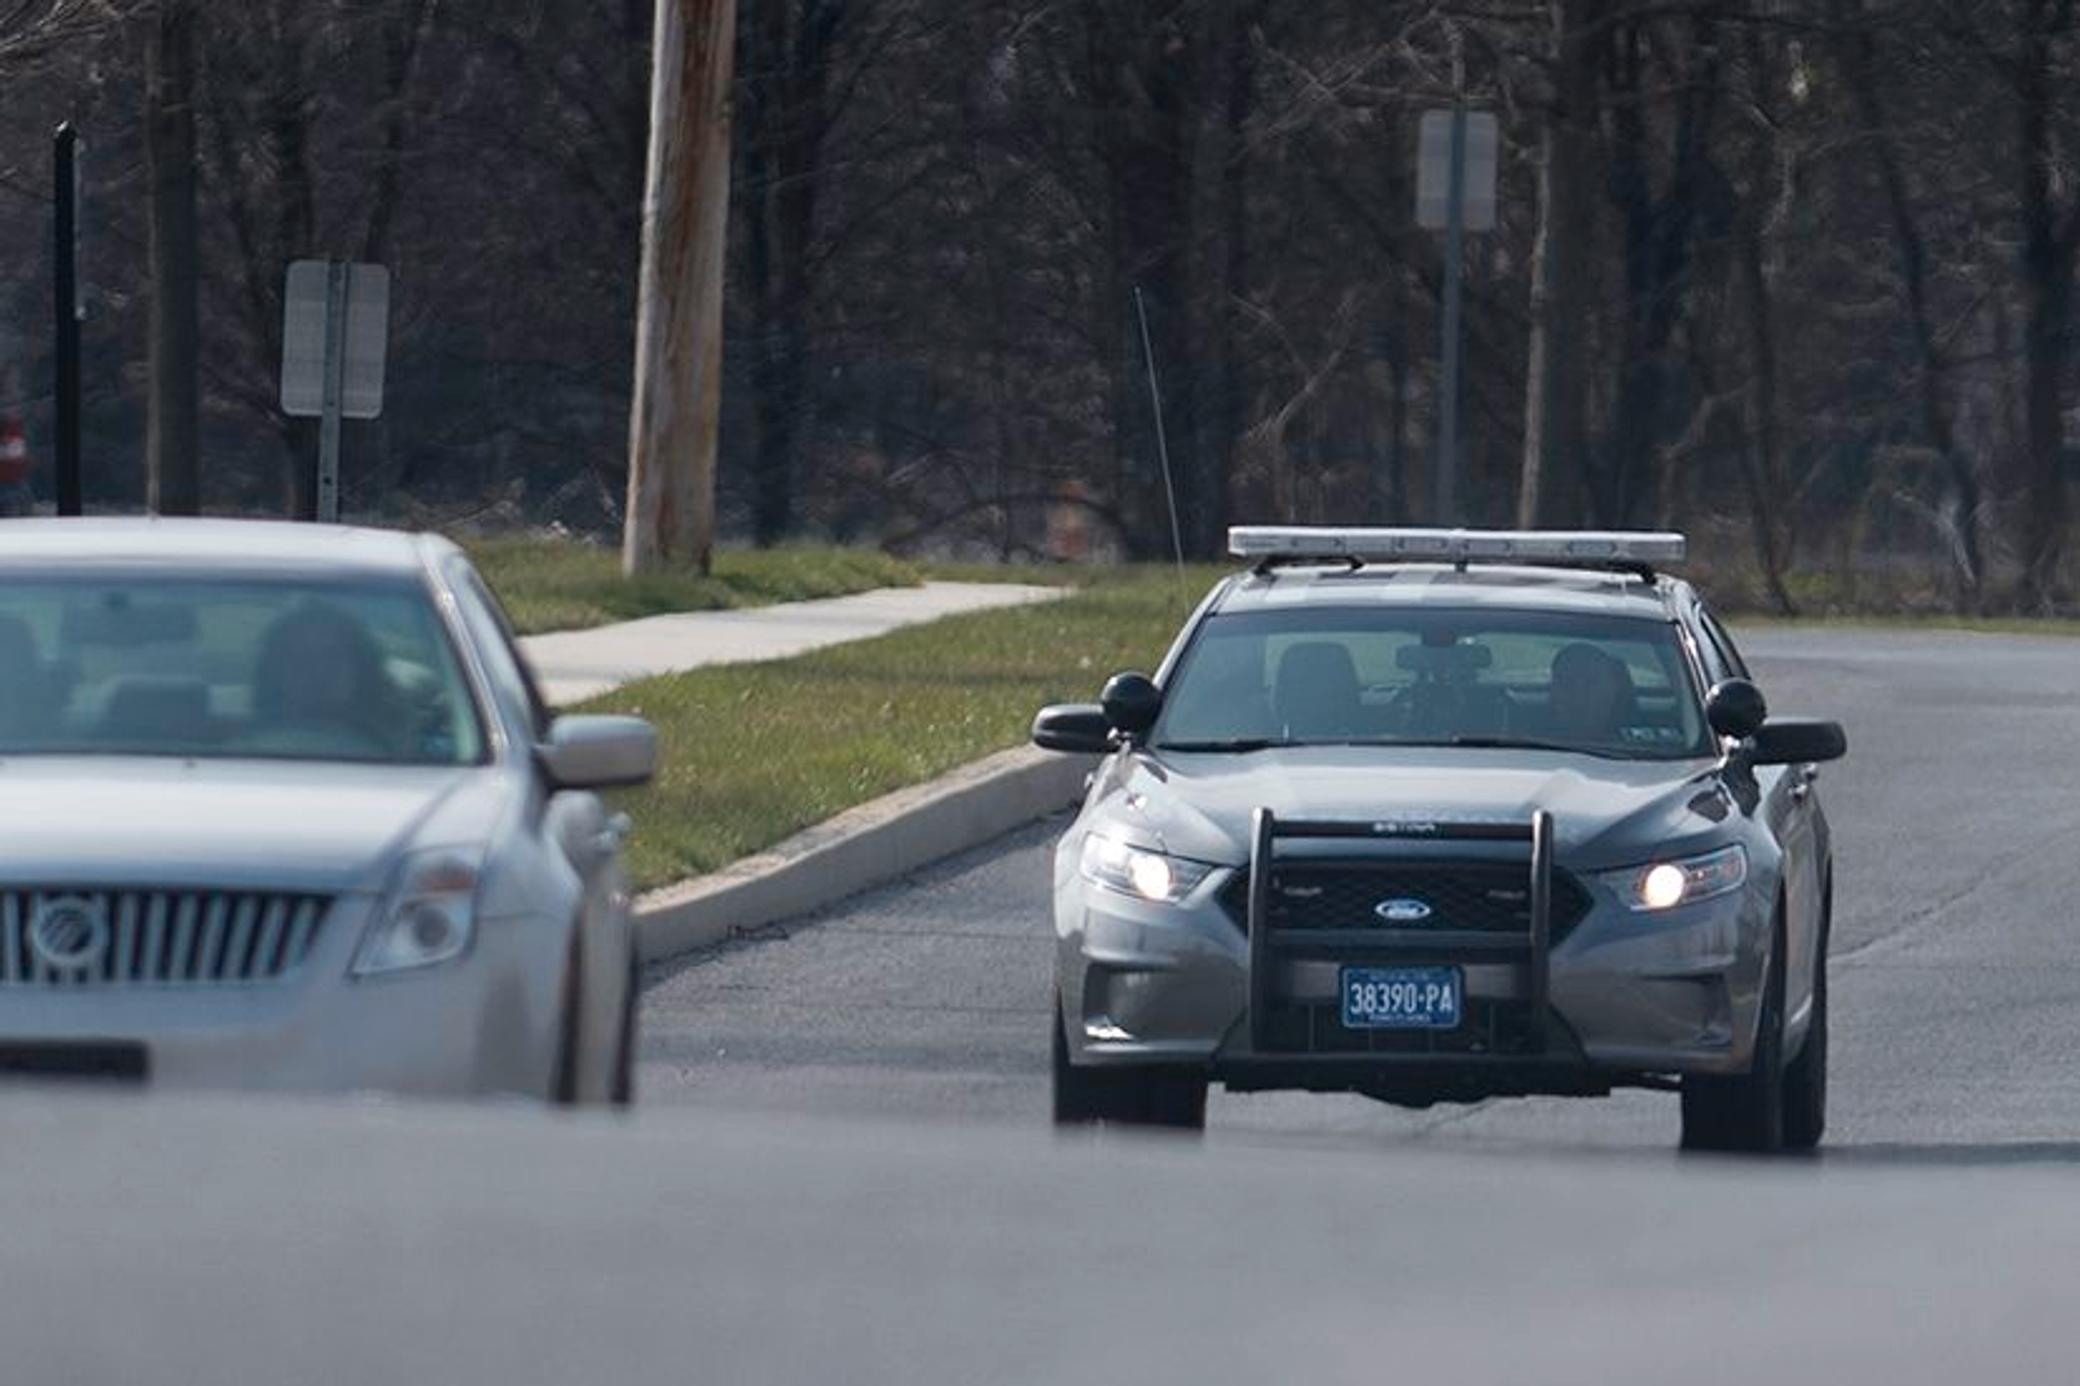 In about one-third of the cases reviewed, state police seized cash from people who were never charged with a crime or even issued a traffic ticket.